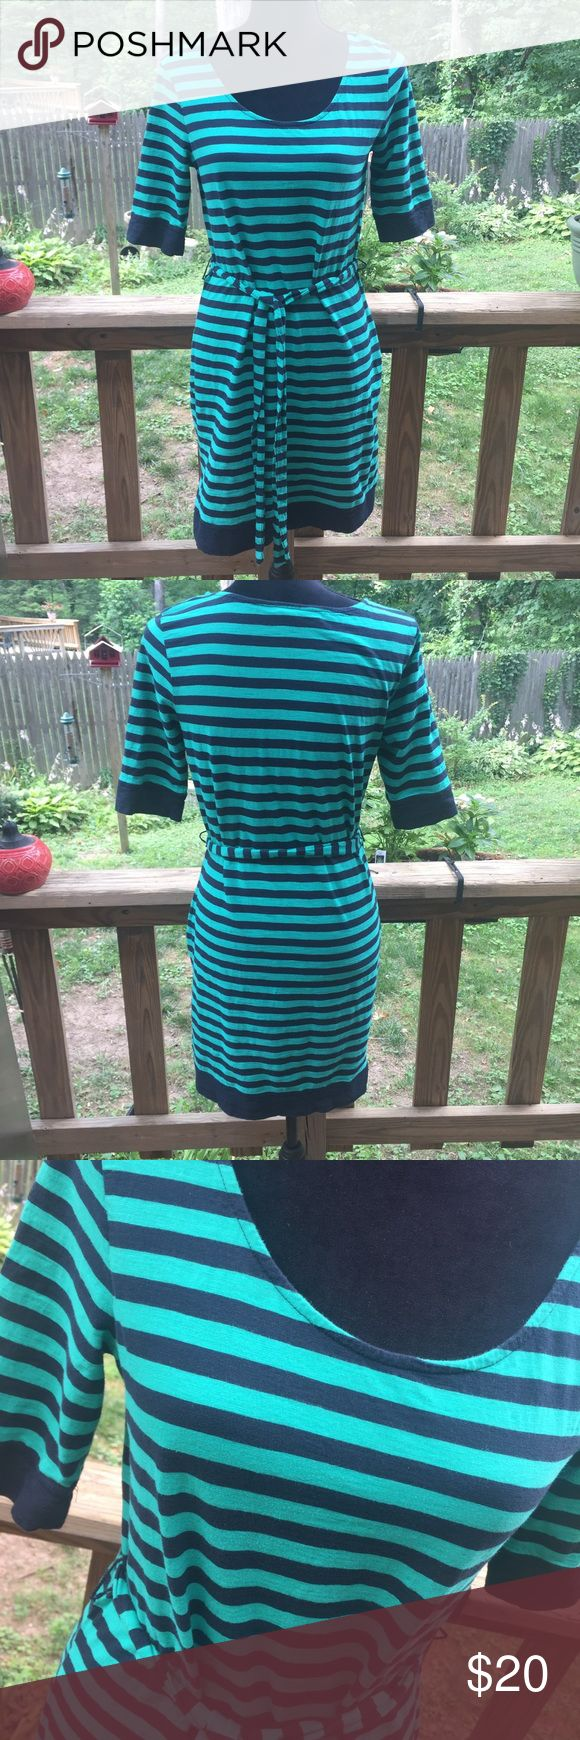 Banana Republic Green and Navy Stripe Dress Excellent condition. 3/4 Sleeve dress in a Kelly green like color and navy. Banana Republic Dresses